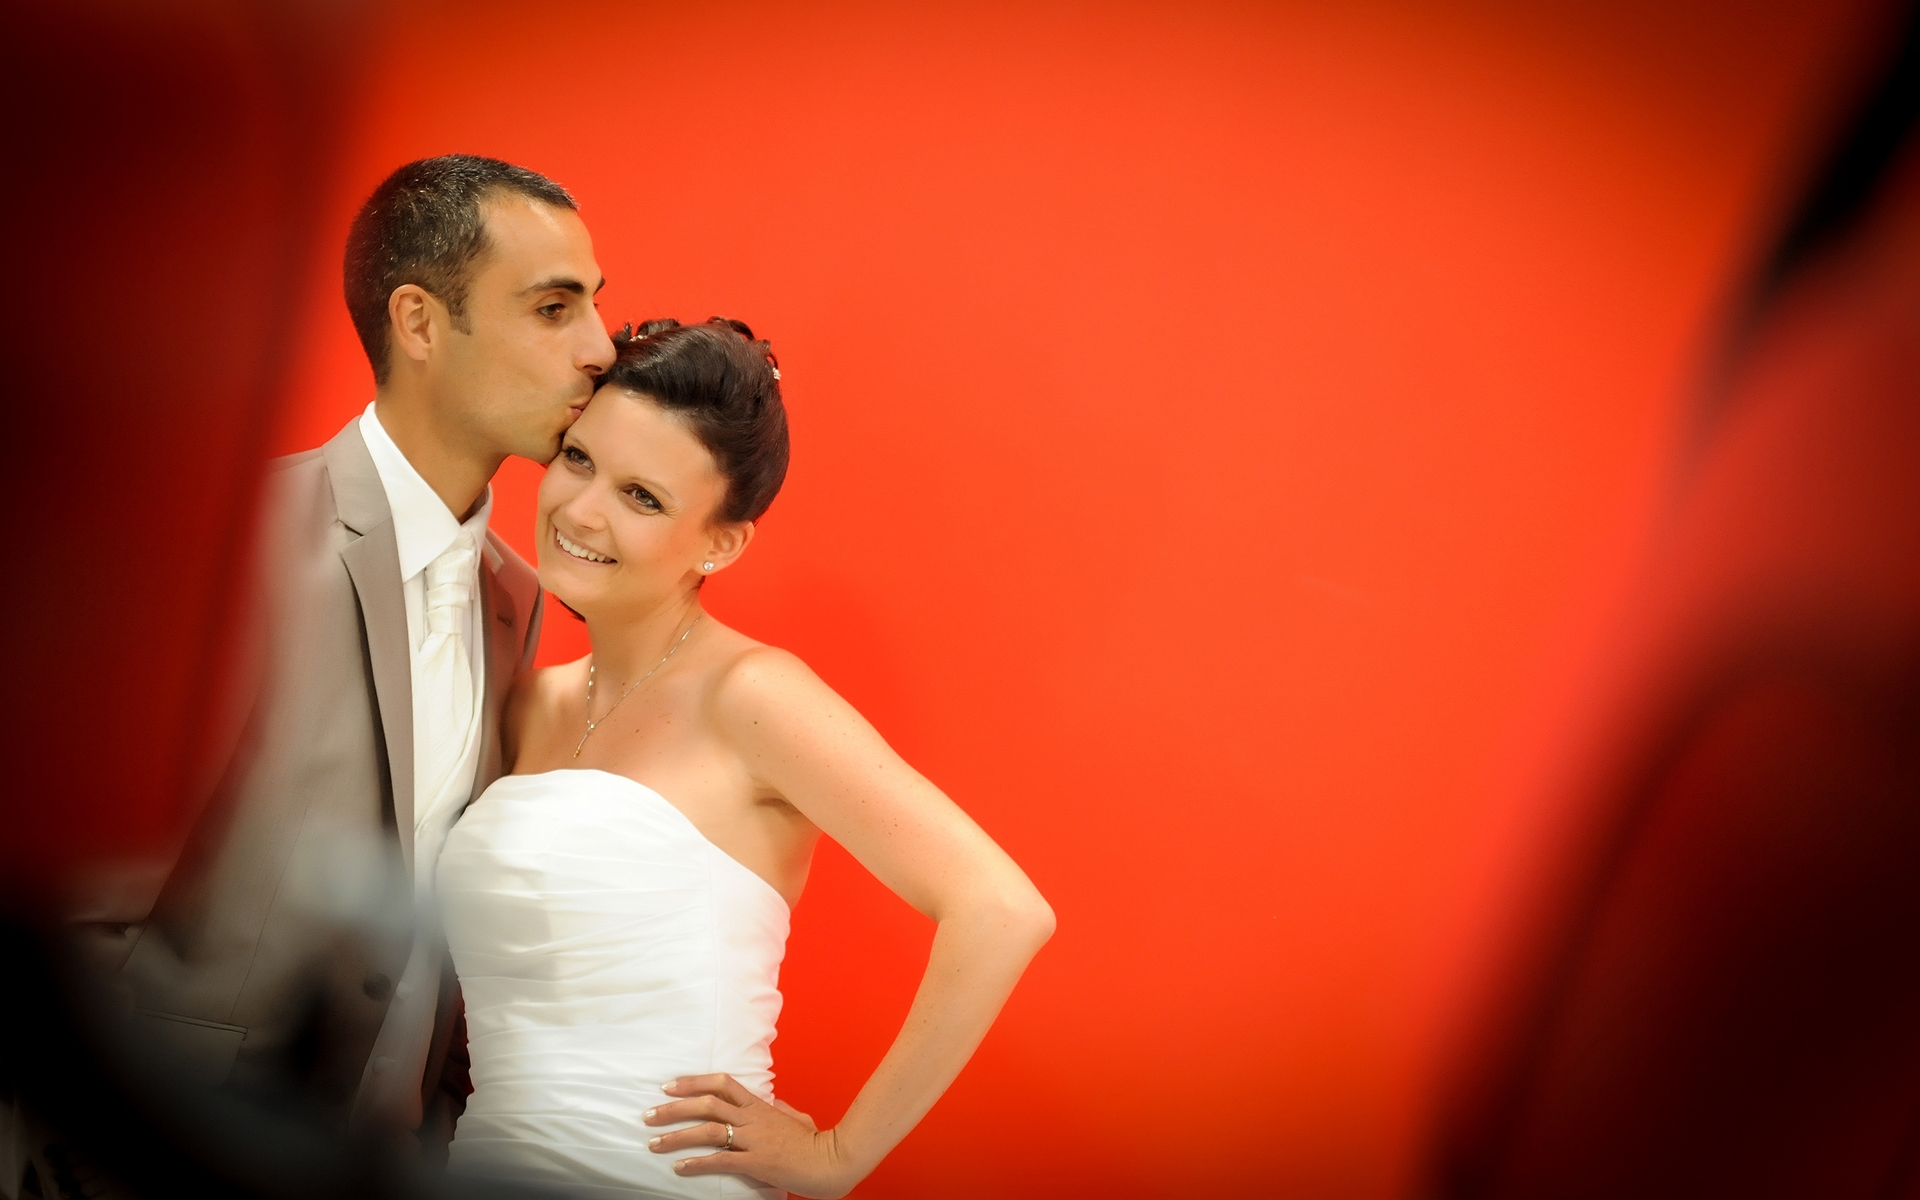 PHOTOGRAPHE MARIAGE AIN 01 - PHOTYS 029 (Sides 57-58)